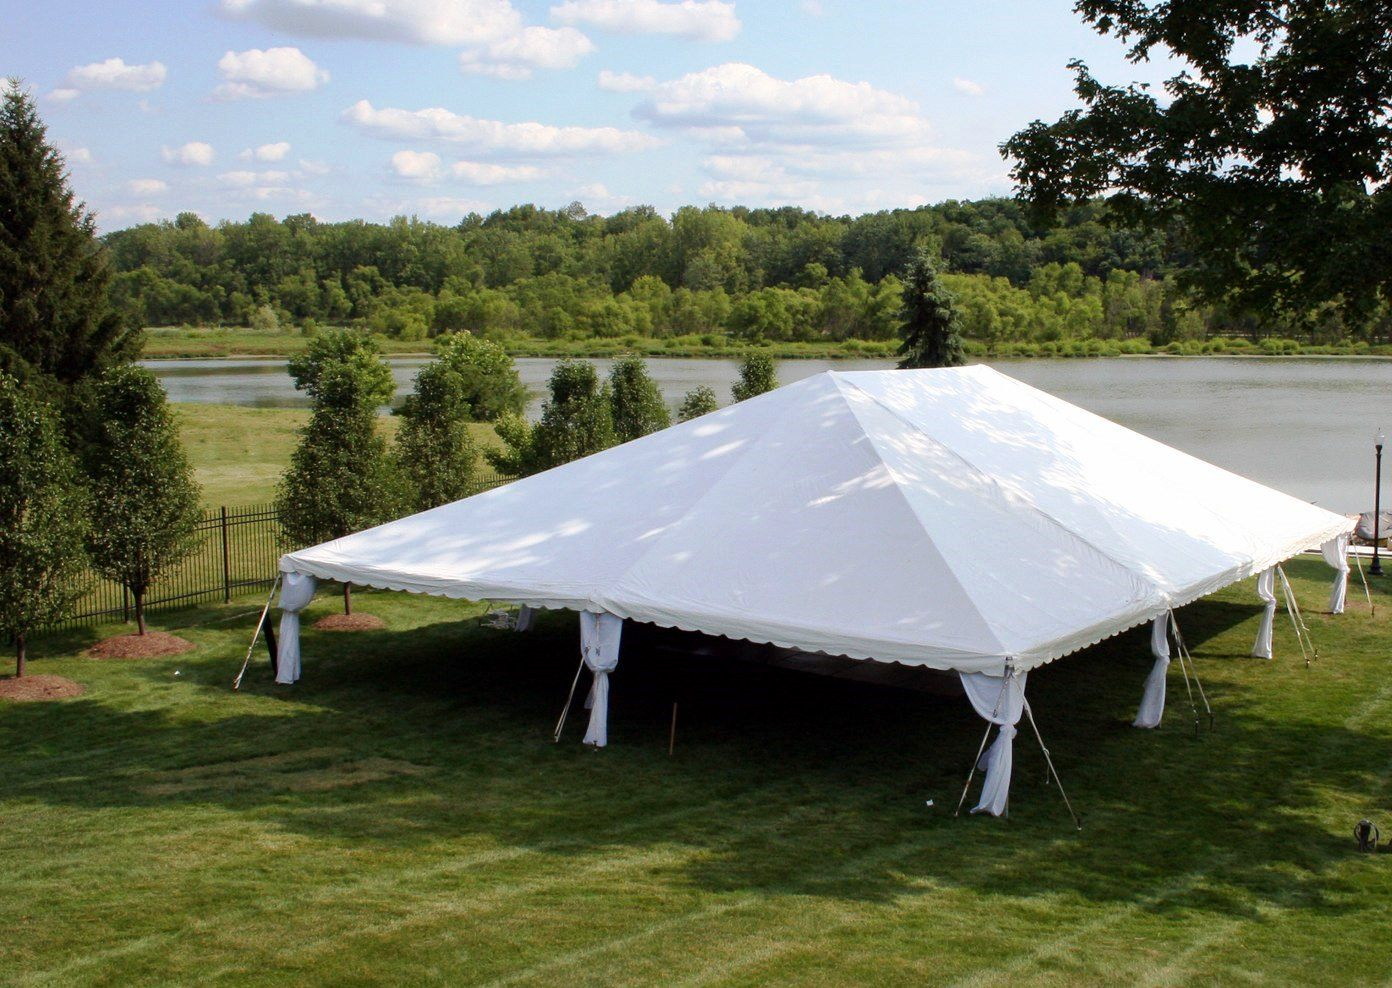 Frame Tent & Frame Tent | A Classic Party Rental | Indianapolis Party Rental